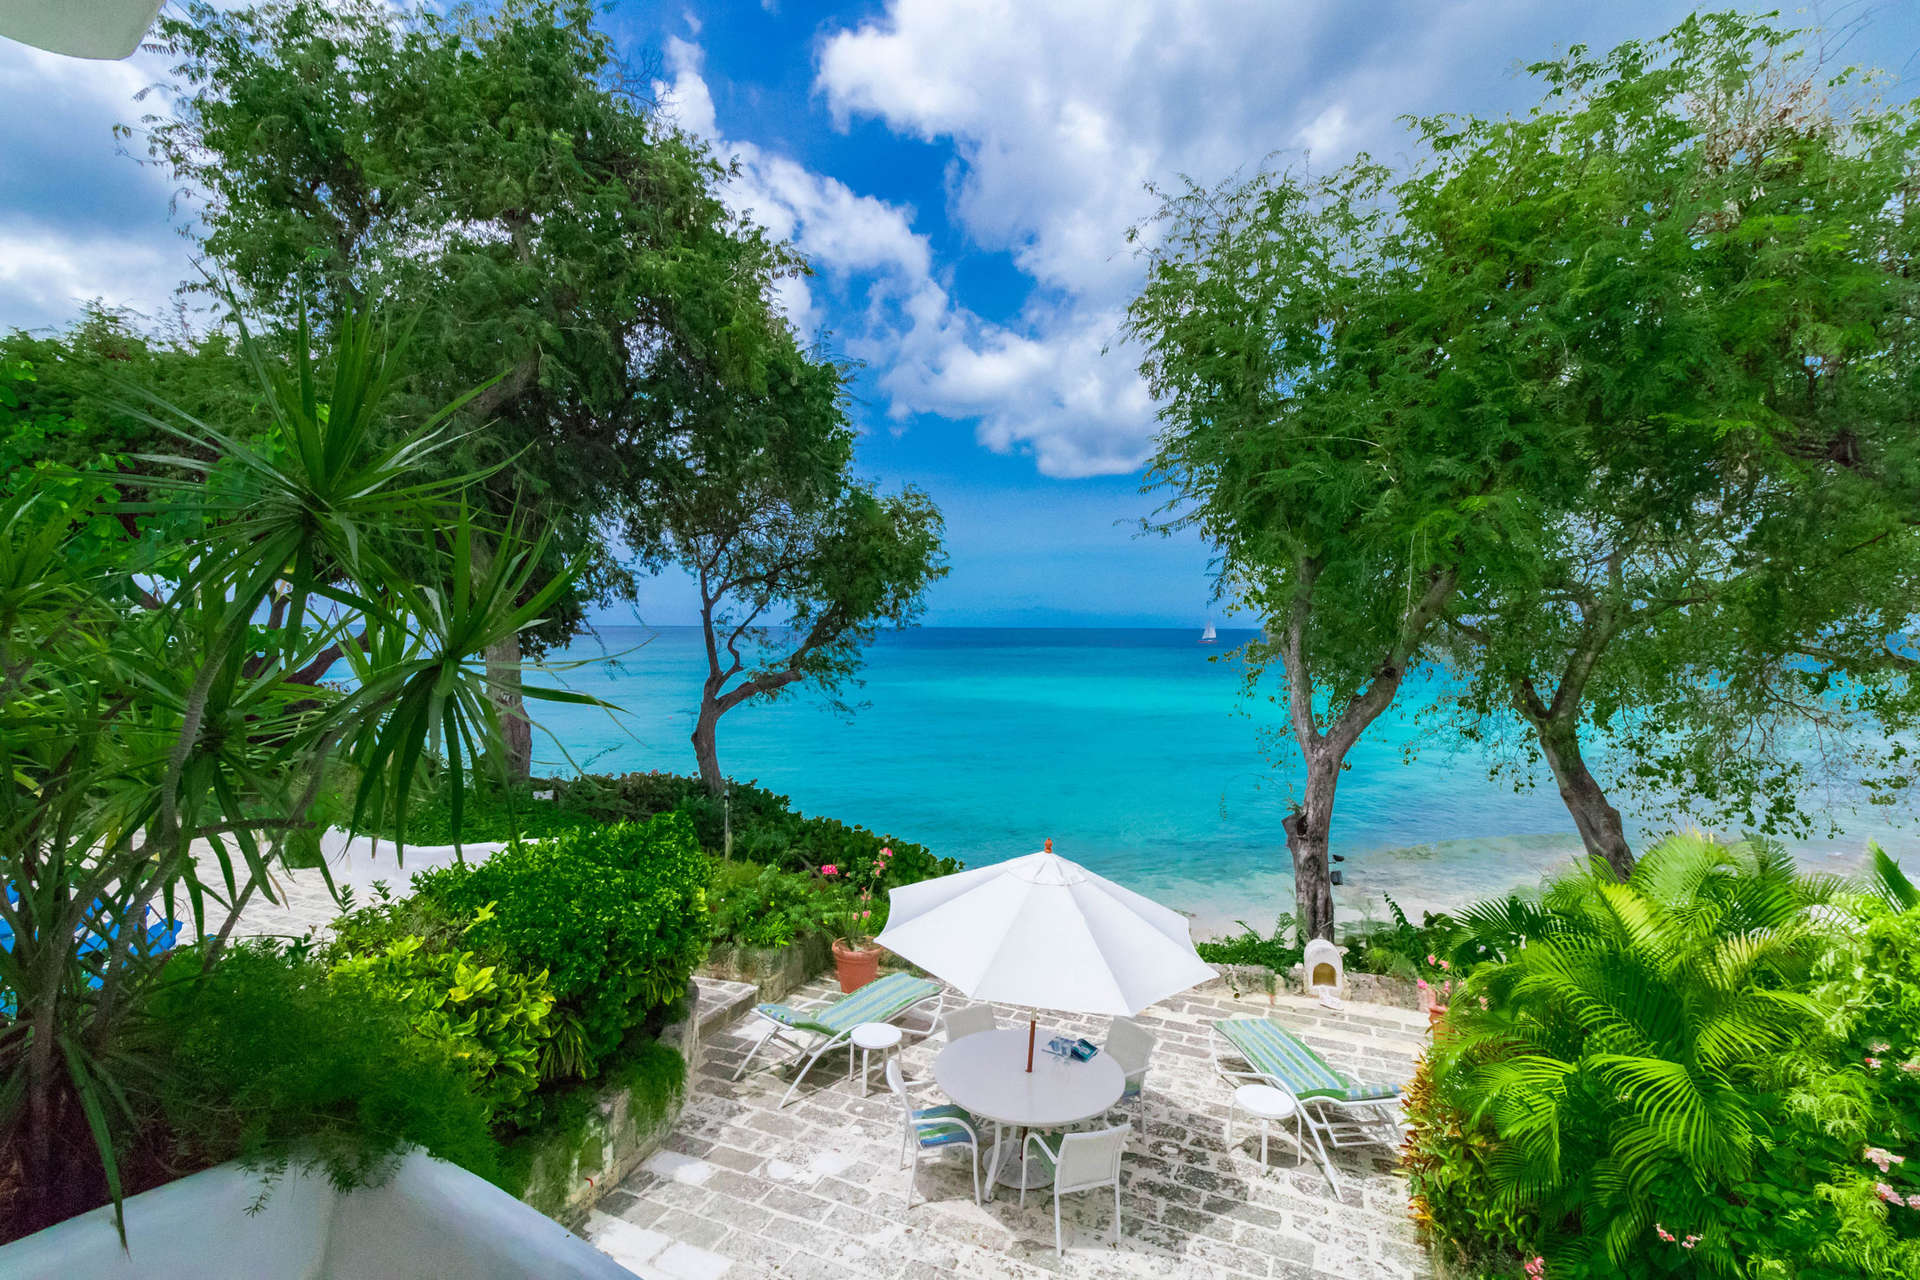 Luxury villa rentals caribbean - Barbados - St james - Merlin bay area - Eden on the Sea - Image 1/21